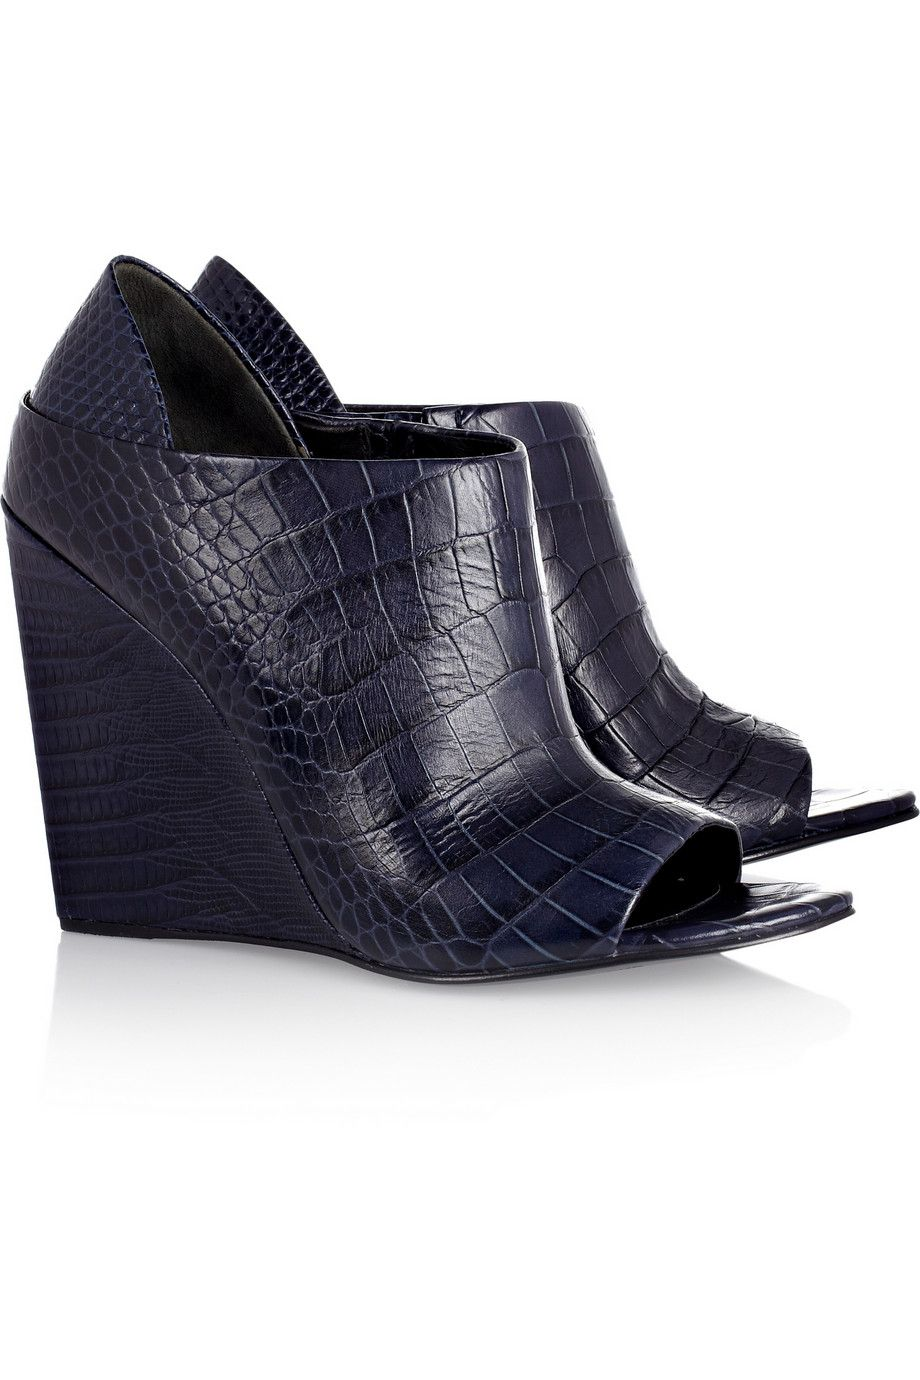 61fd63b79137fe Alla croc and lizard-effect leather wedges by Alexander Wang ...